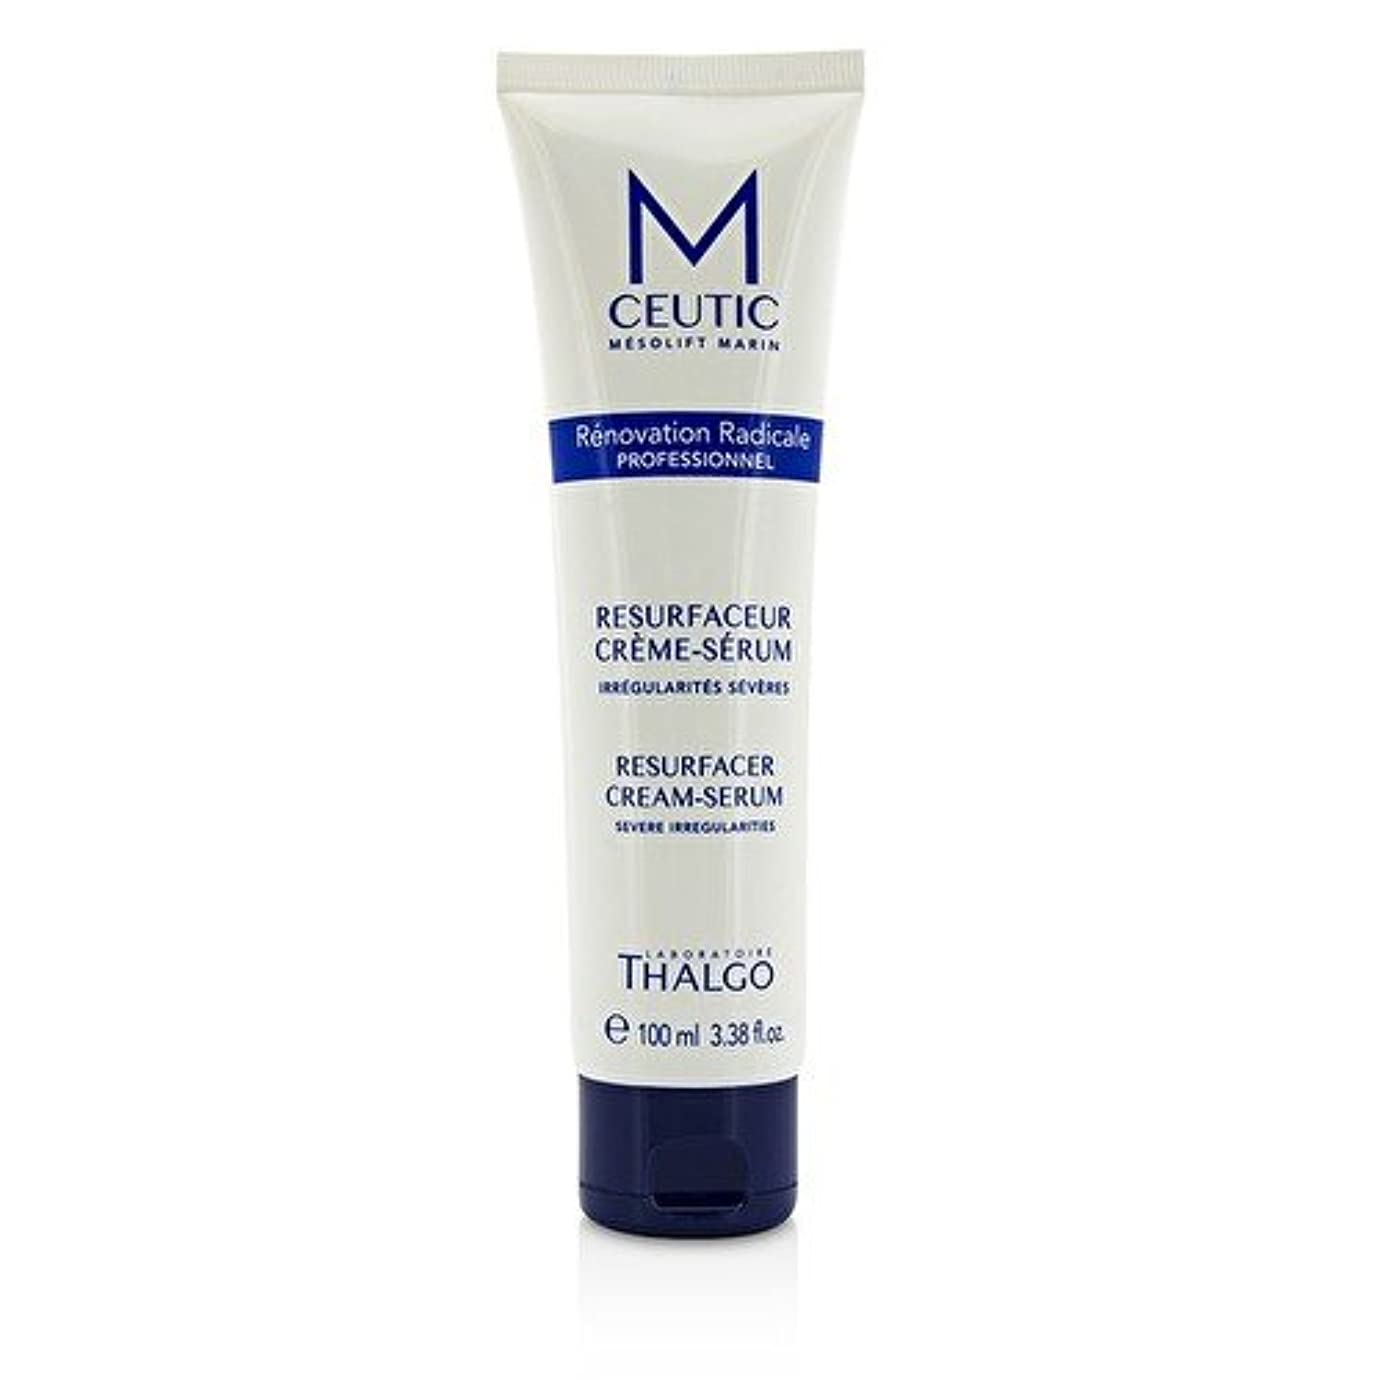 閃光美しい拾うタルゴ MCEUTIC Resurfacer Cream-Serum - Salon Size 100ml/3.38oz並行輸入品